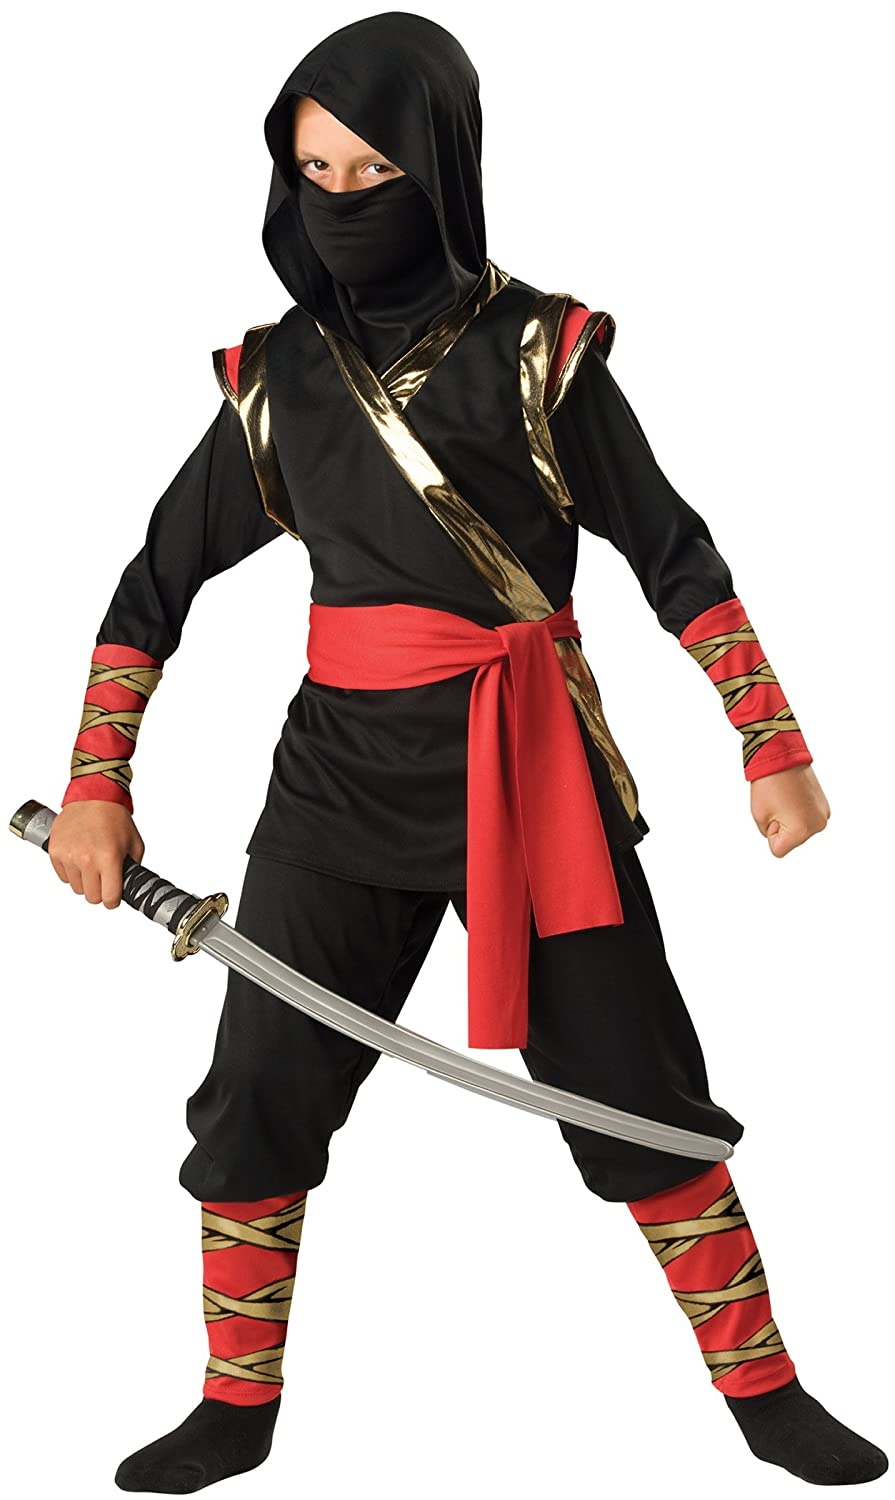 In Character Costumes 180941 Ninja Child Costume Size: 4